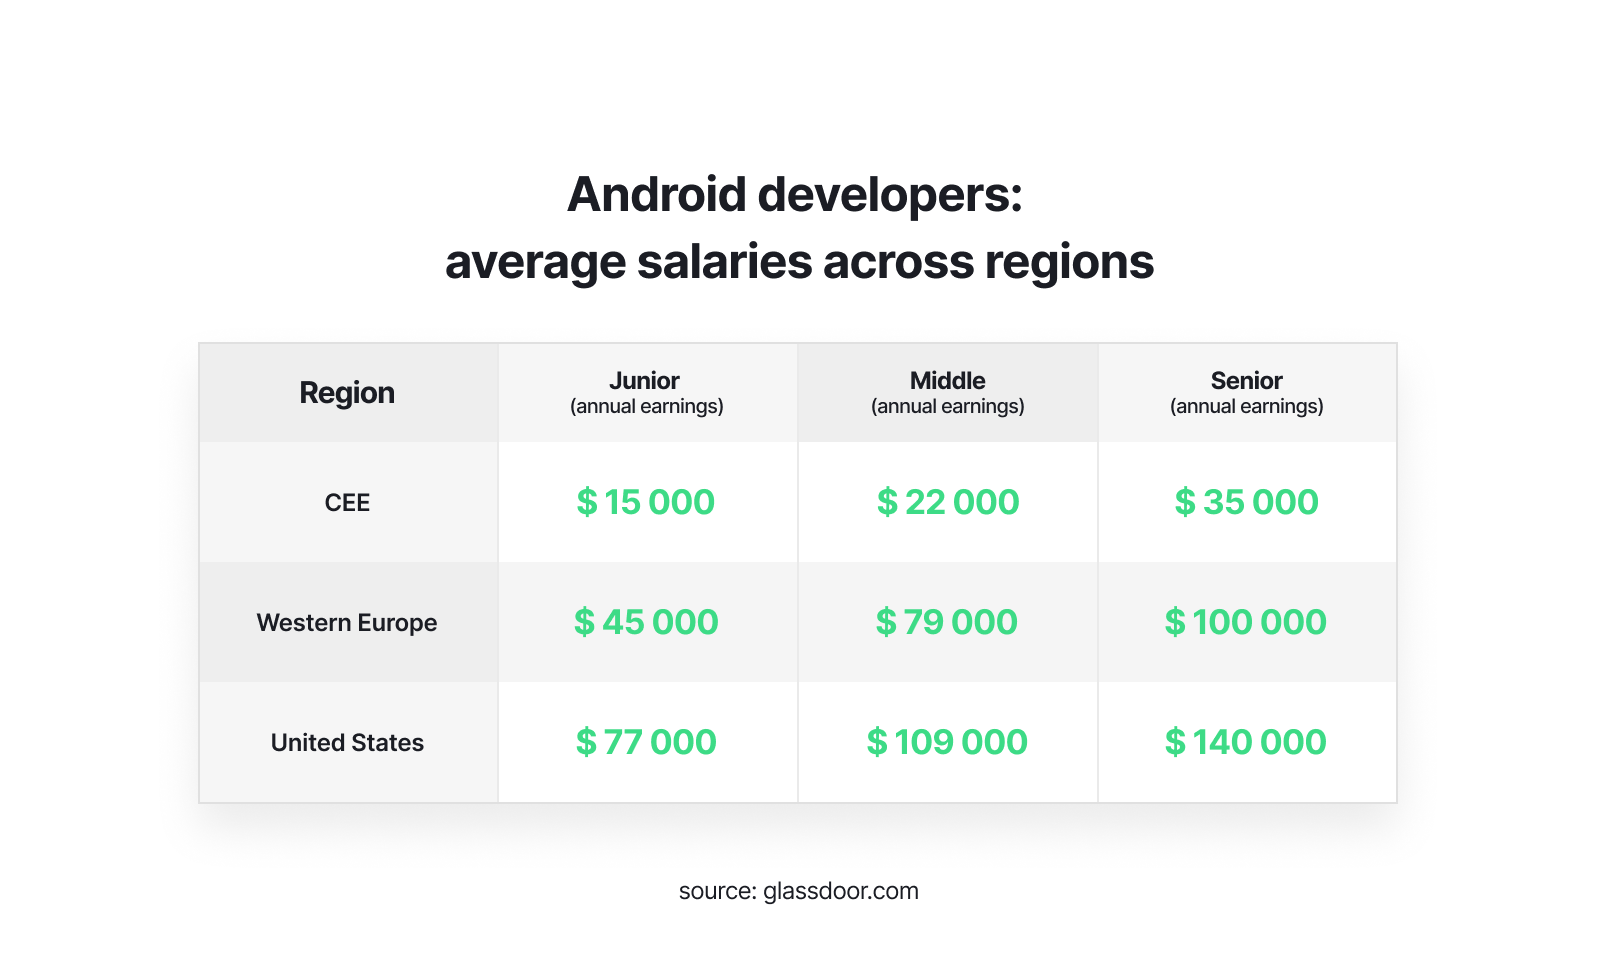 Android developers salaries